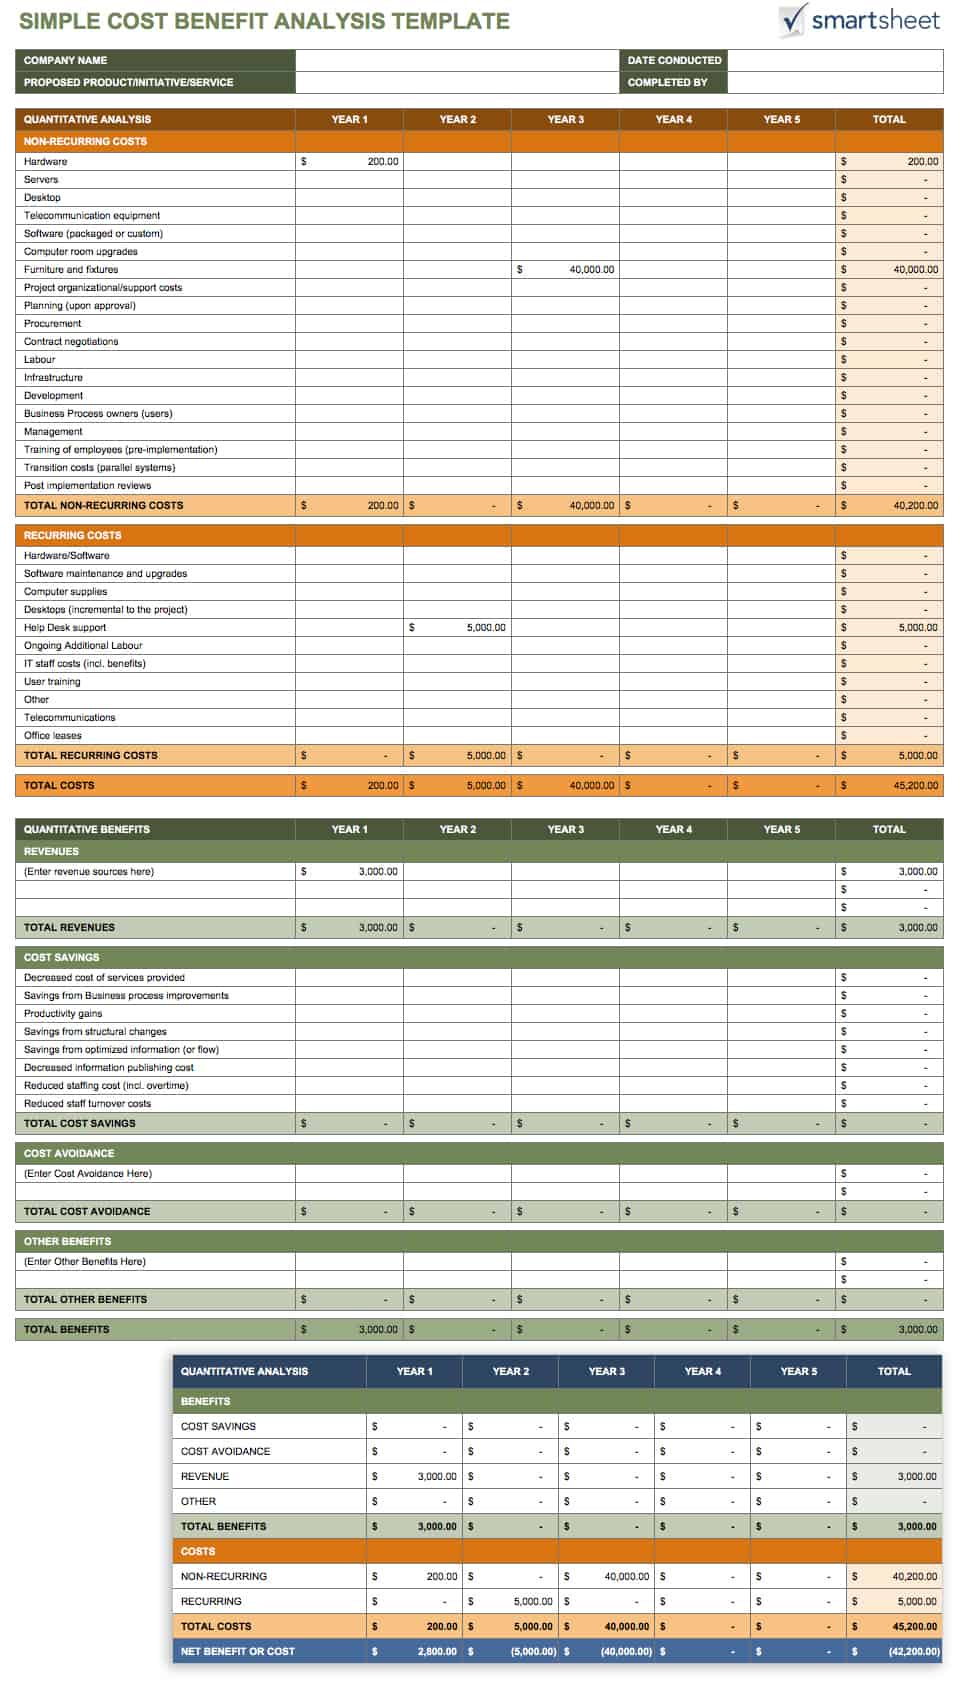 Free cost benefit analysis templates smartsheet for Cost benefits analysis template